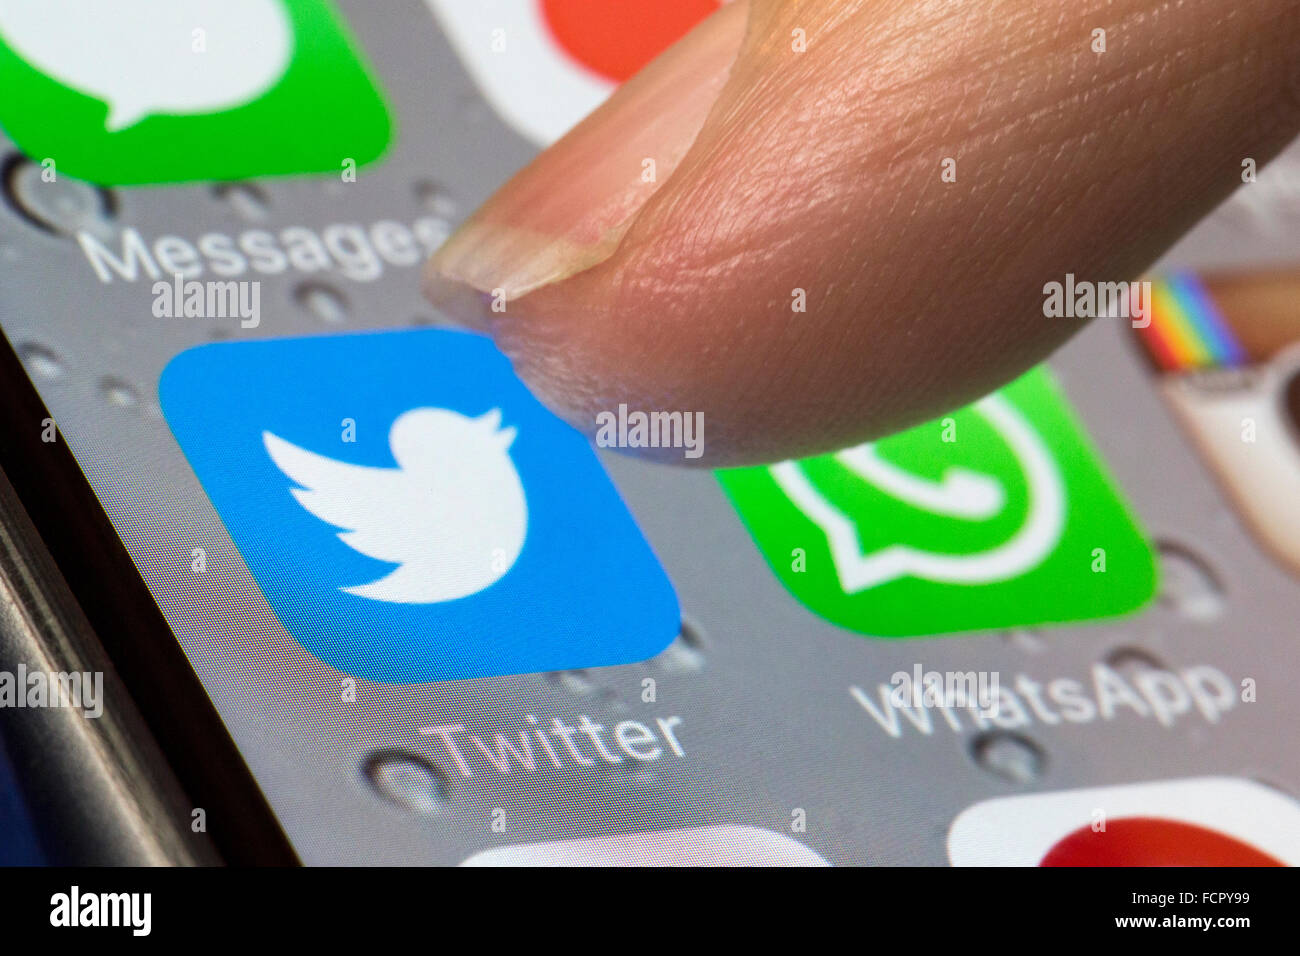 Twitter app icon on an iphone 6 - Stock Image